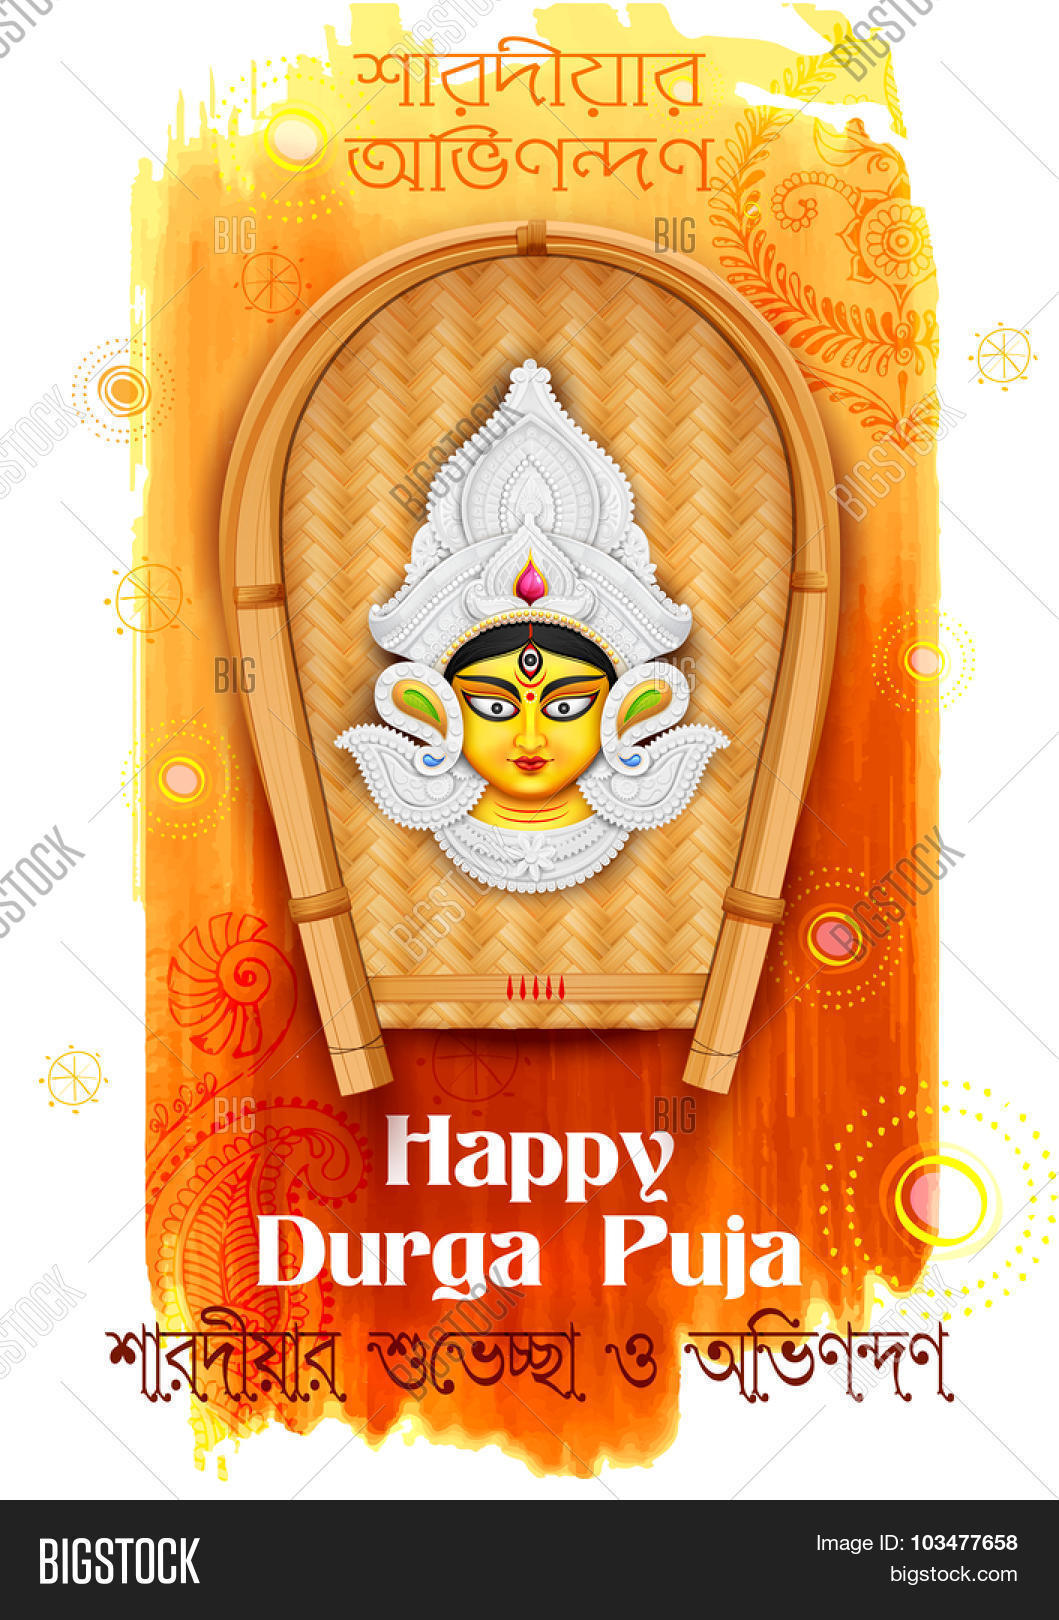 Illustration happy vector photo free trial bigstock illustration of happy durga puja background with bengali text meaning autumn wishes and greetings m4hsunfo